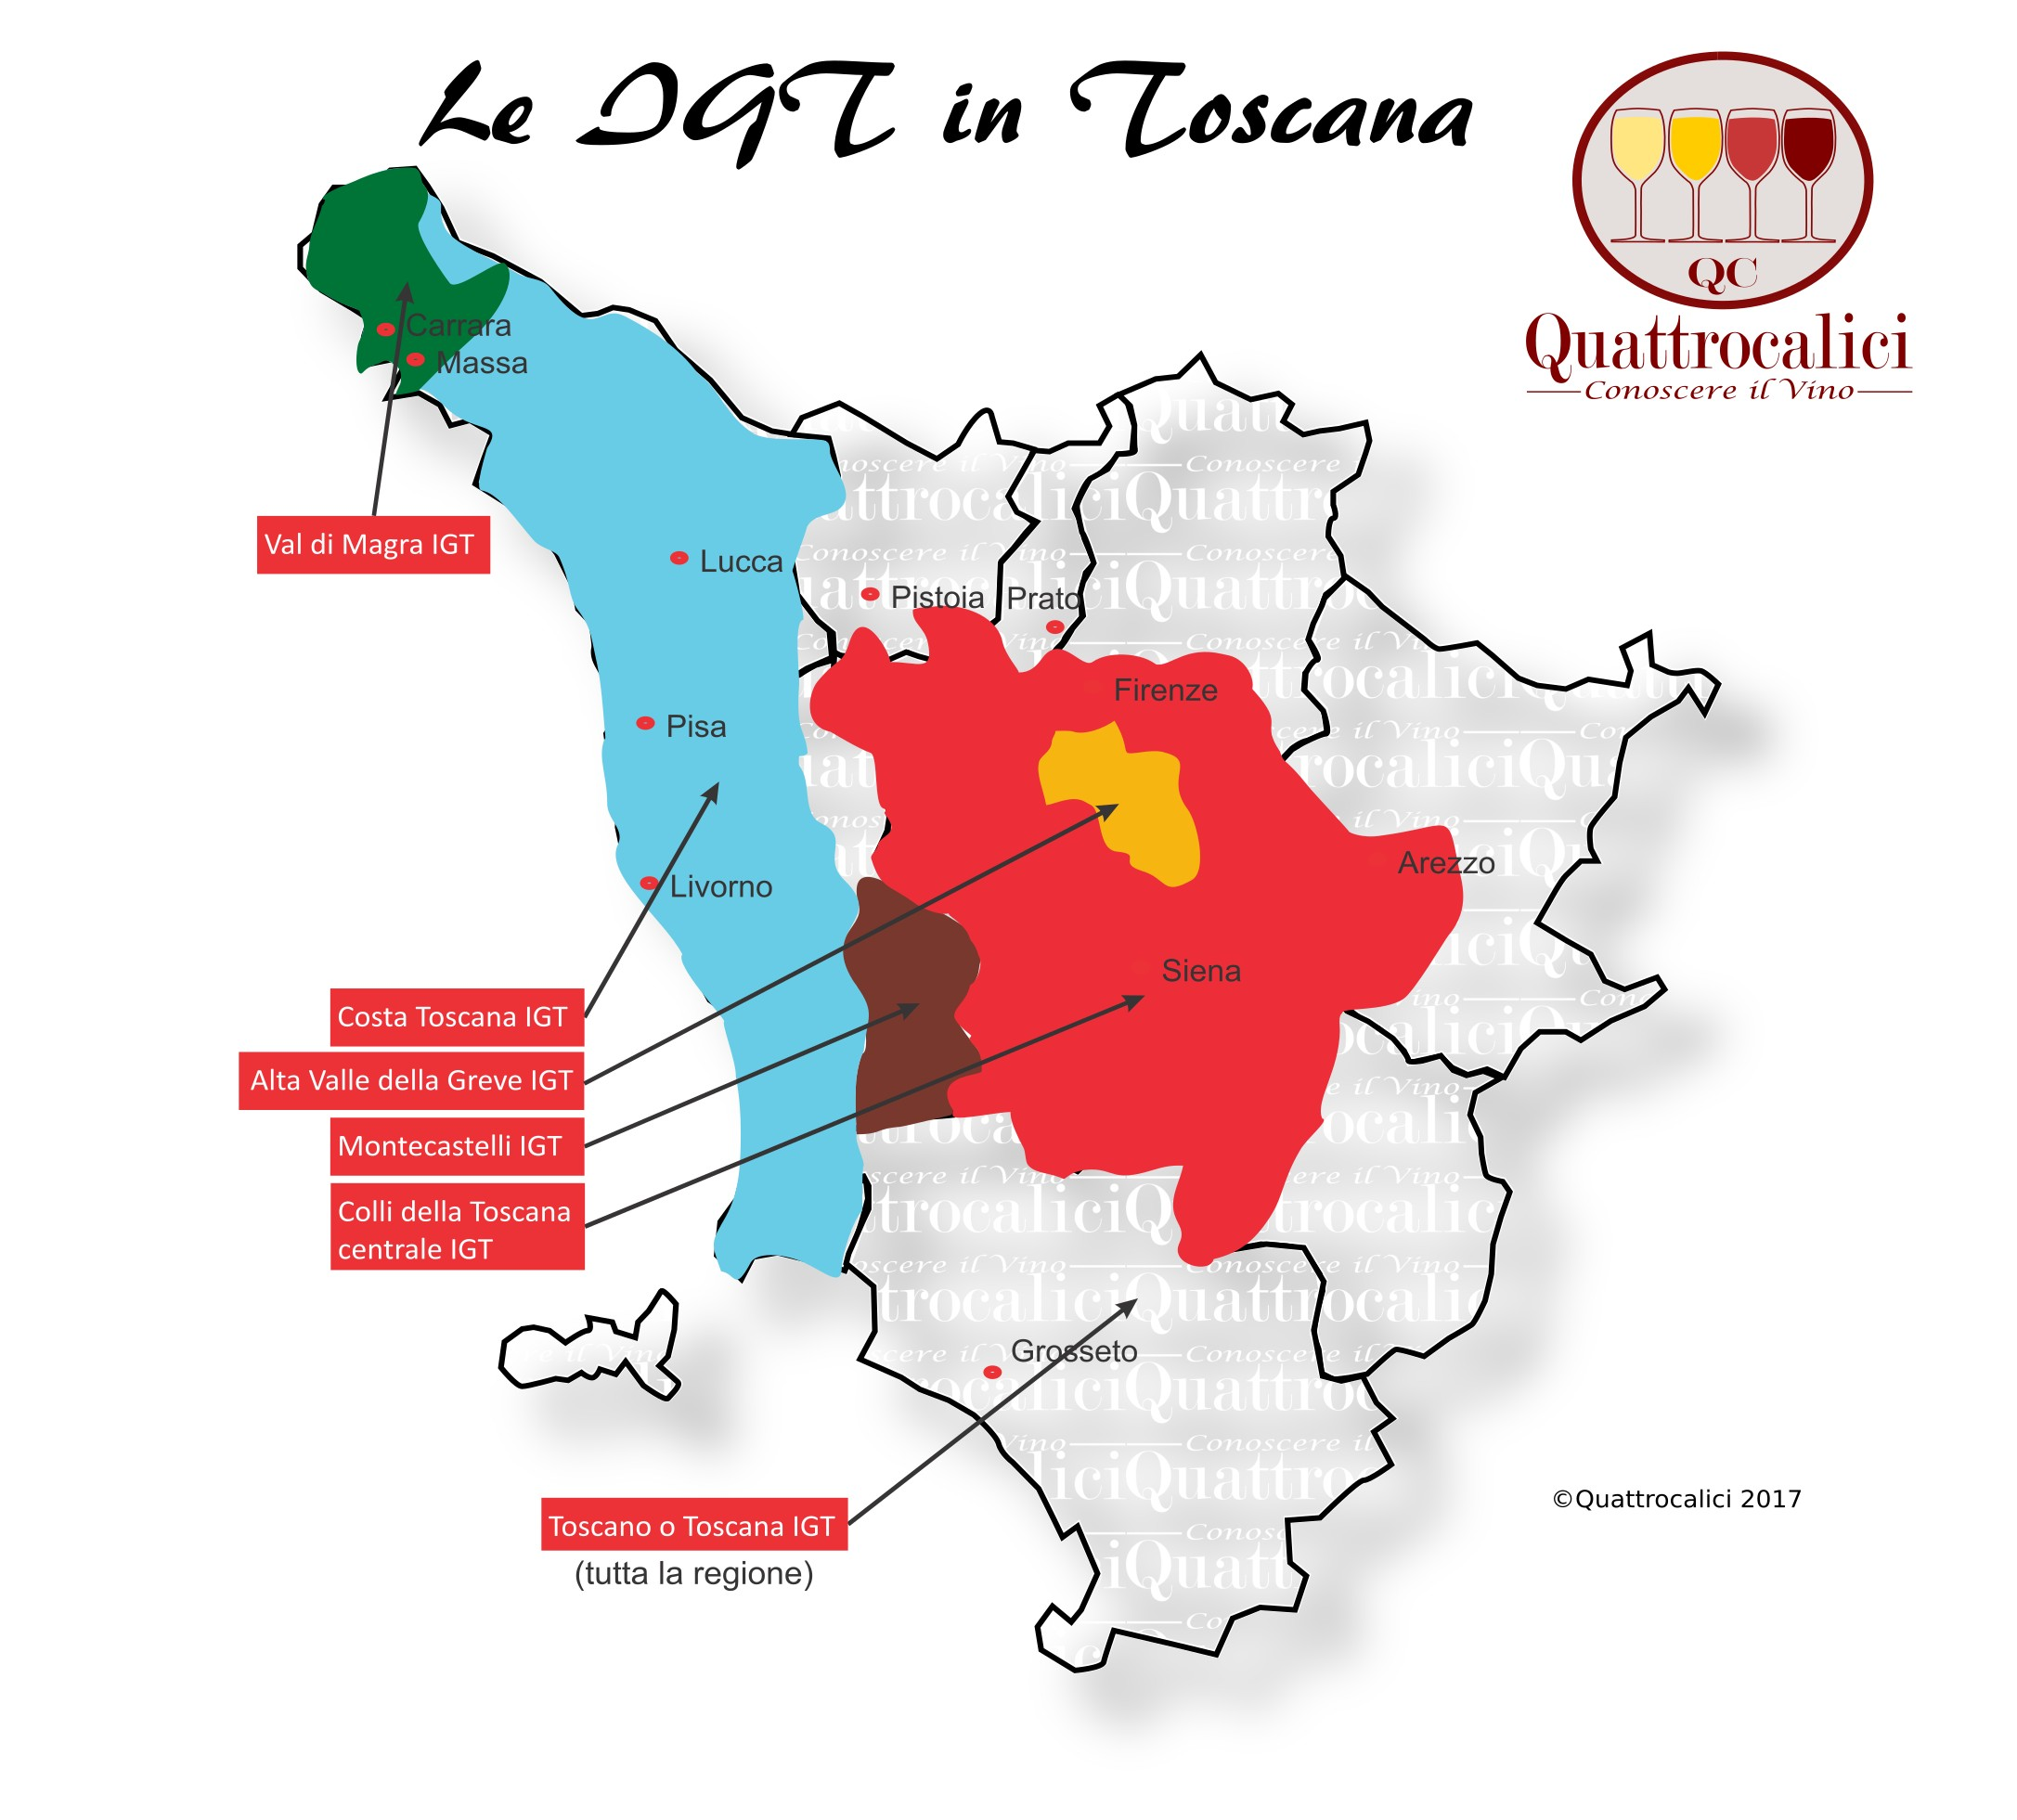 Le IGT in Toscana